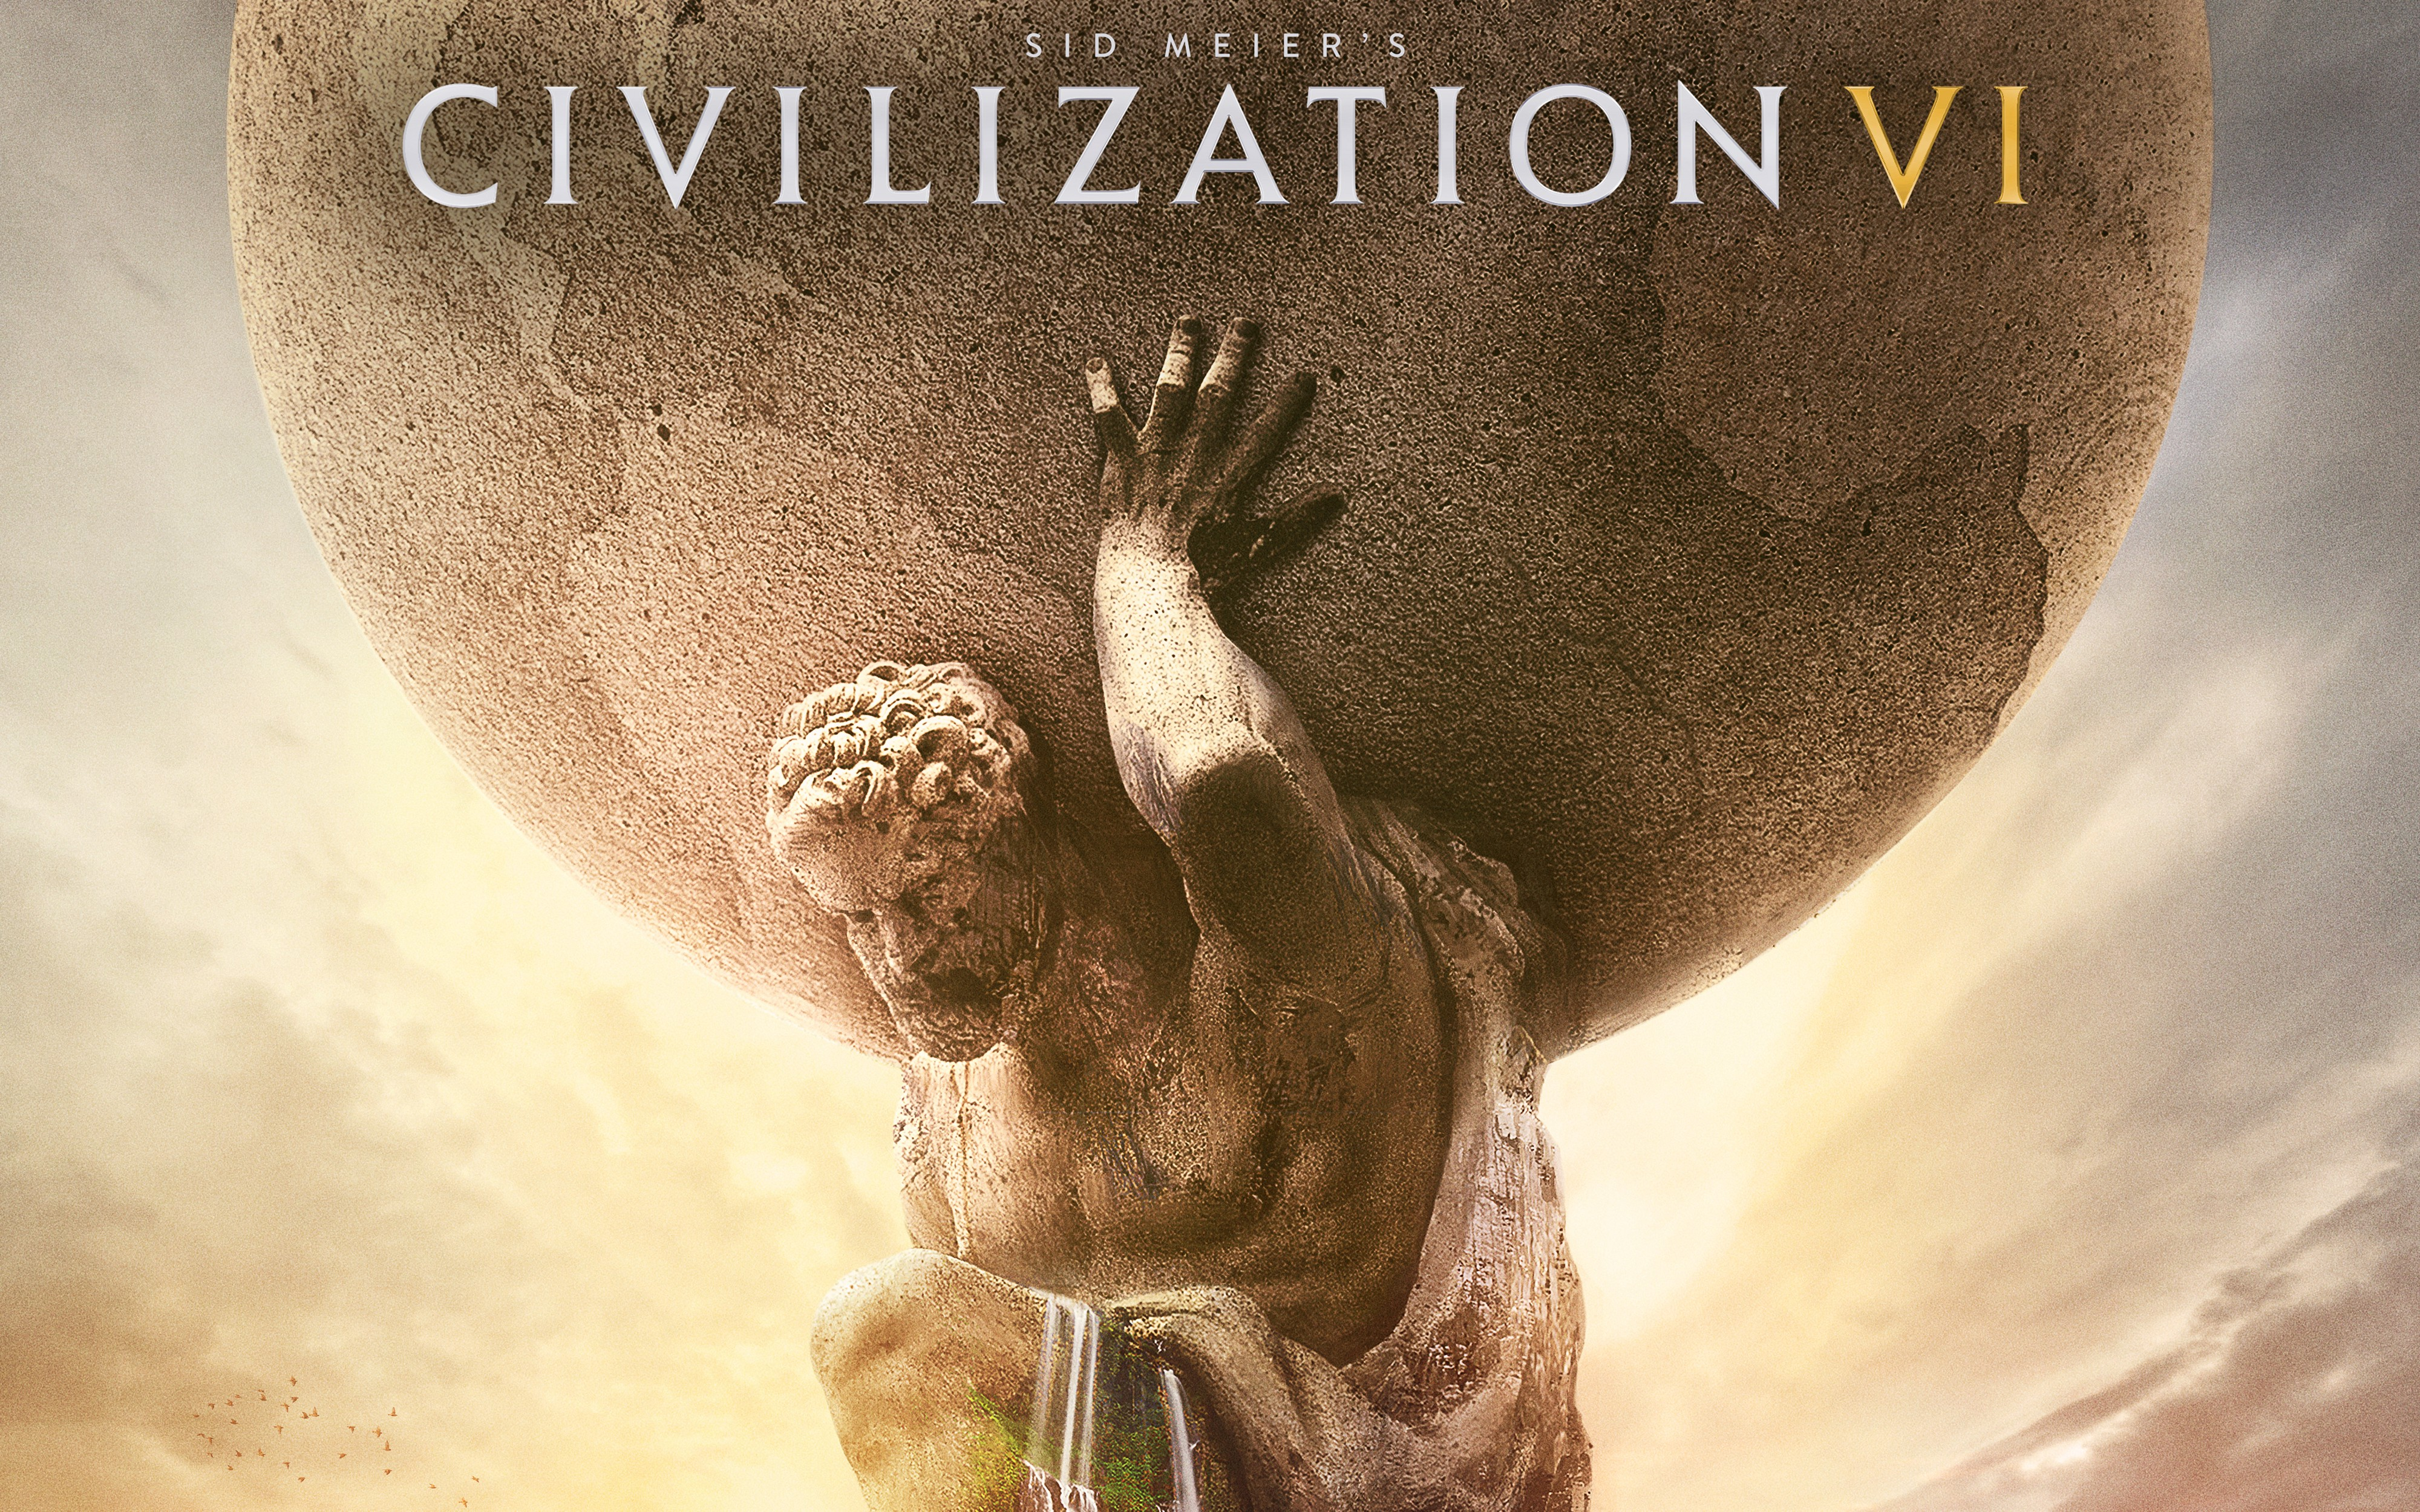 Civ 6 is Very Nearly a Great Game - Nick Heiner - Medium